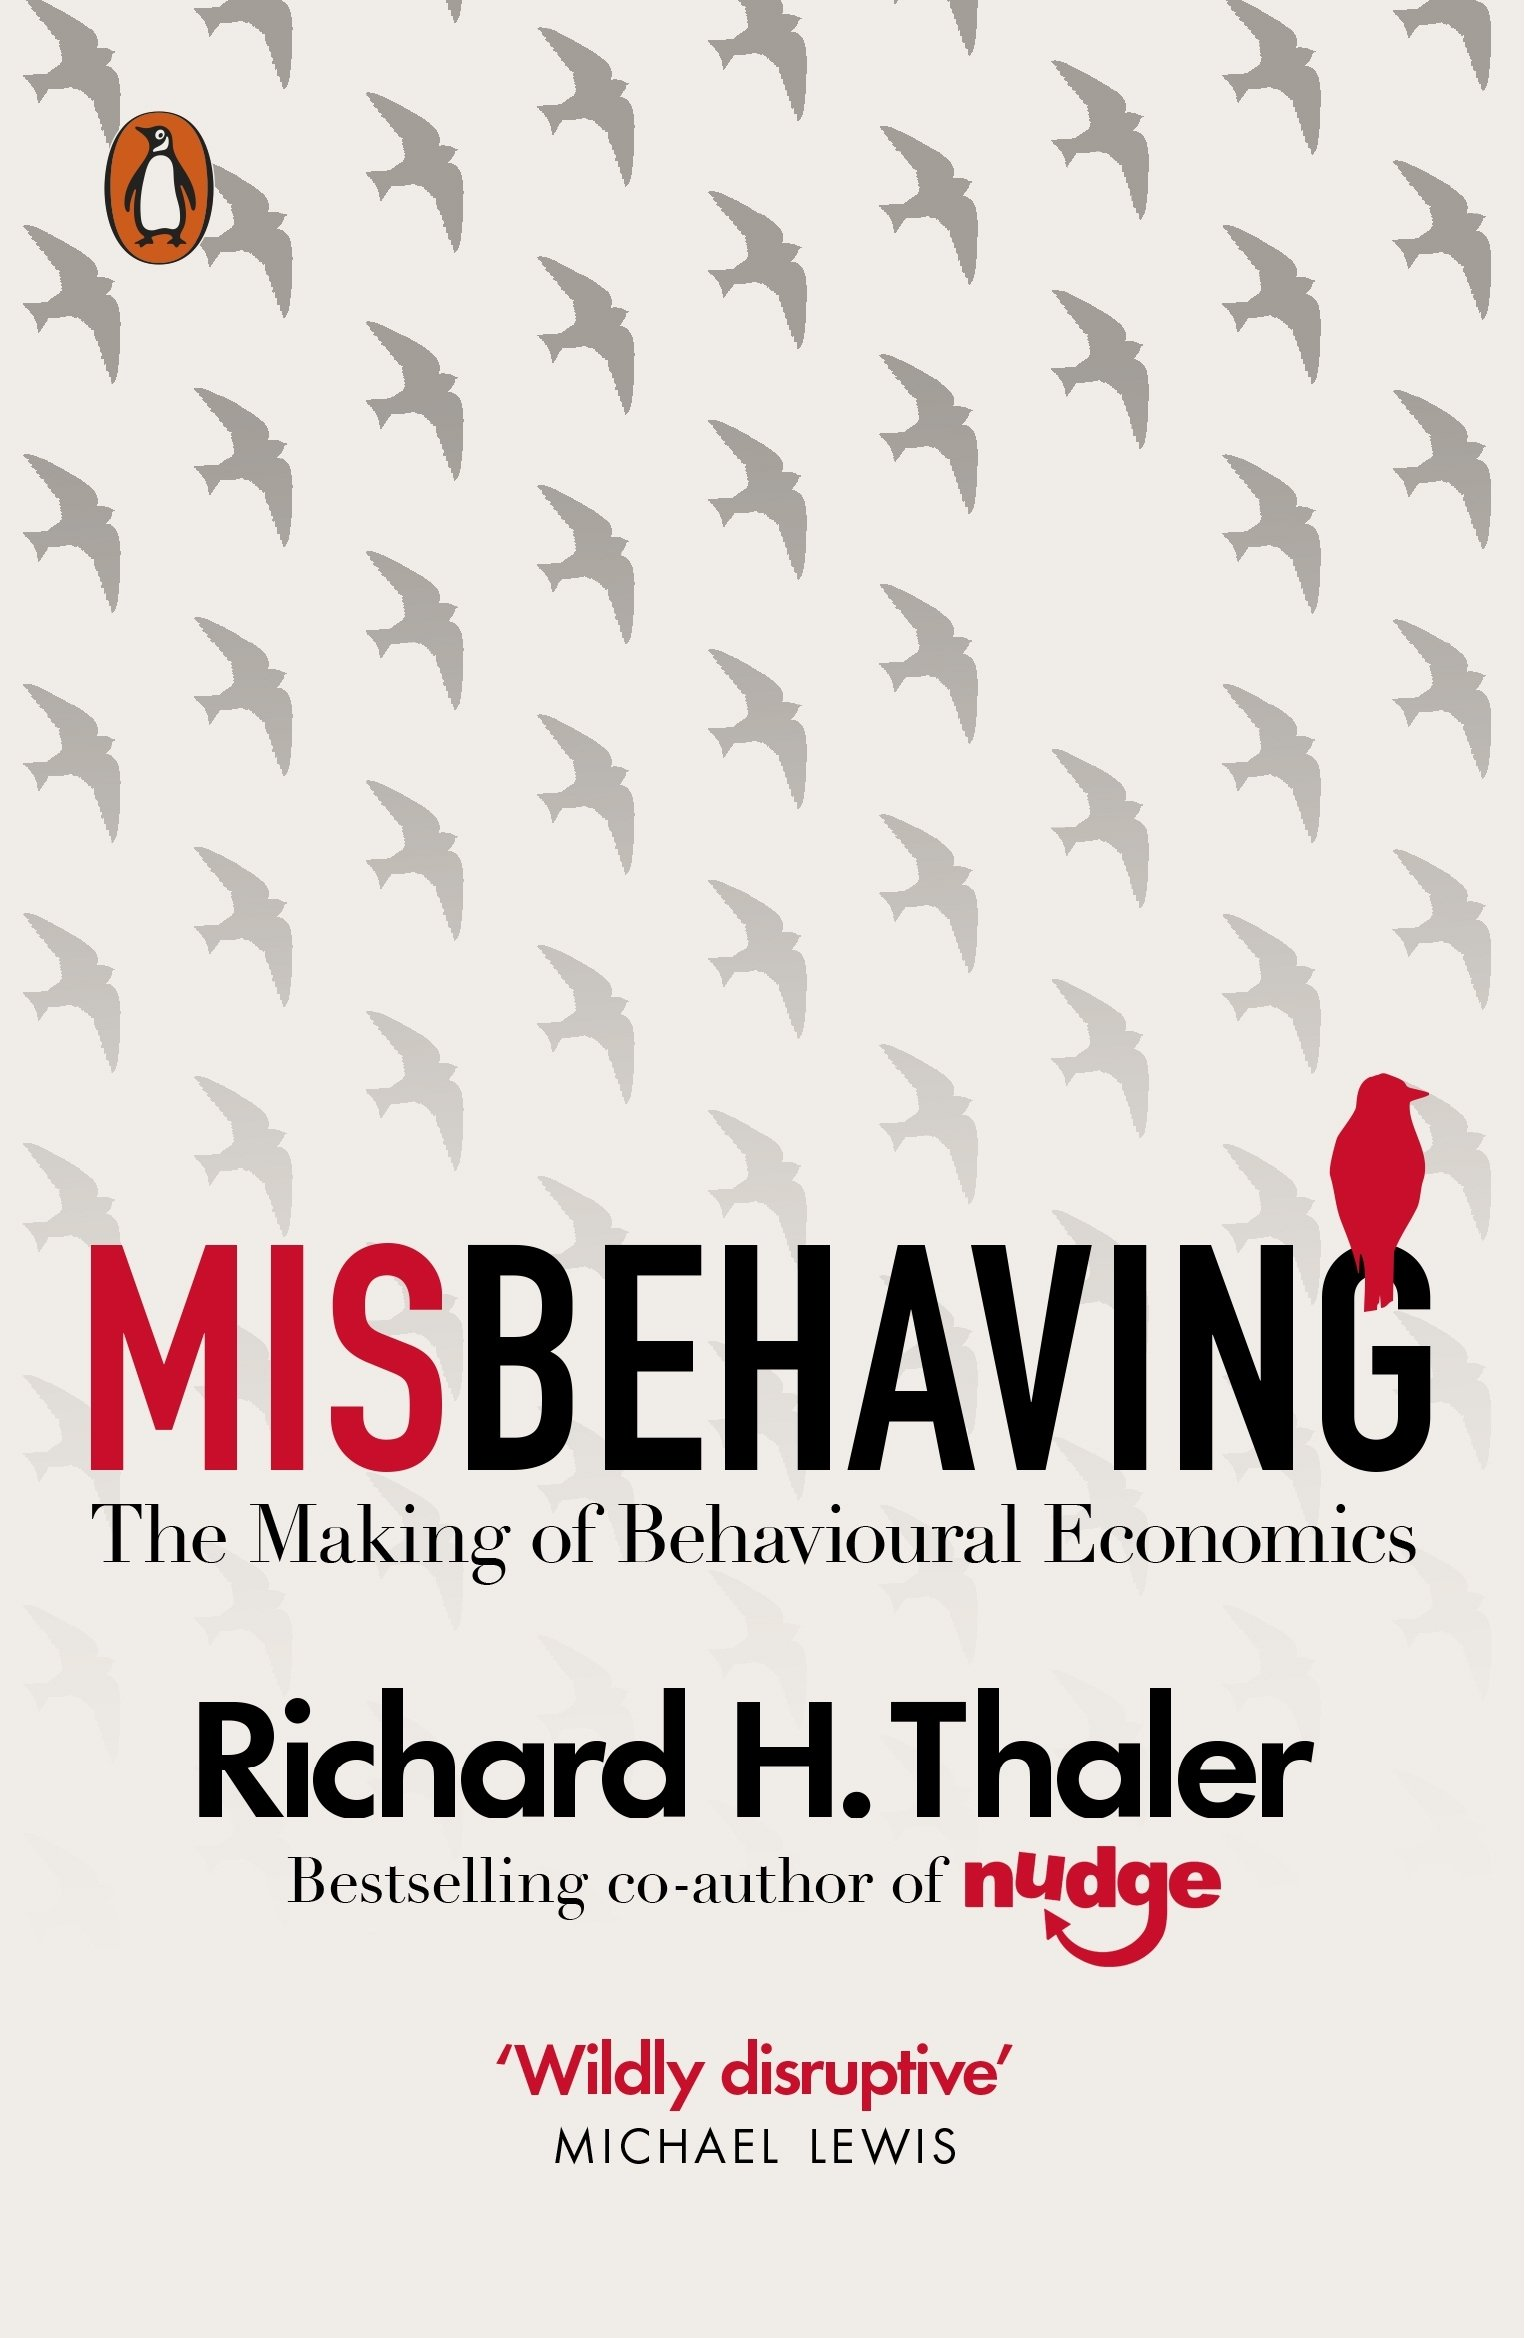 Recommendation - Misbehaving